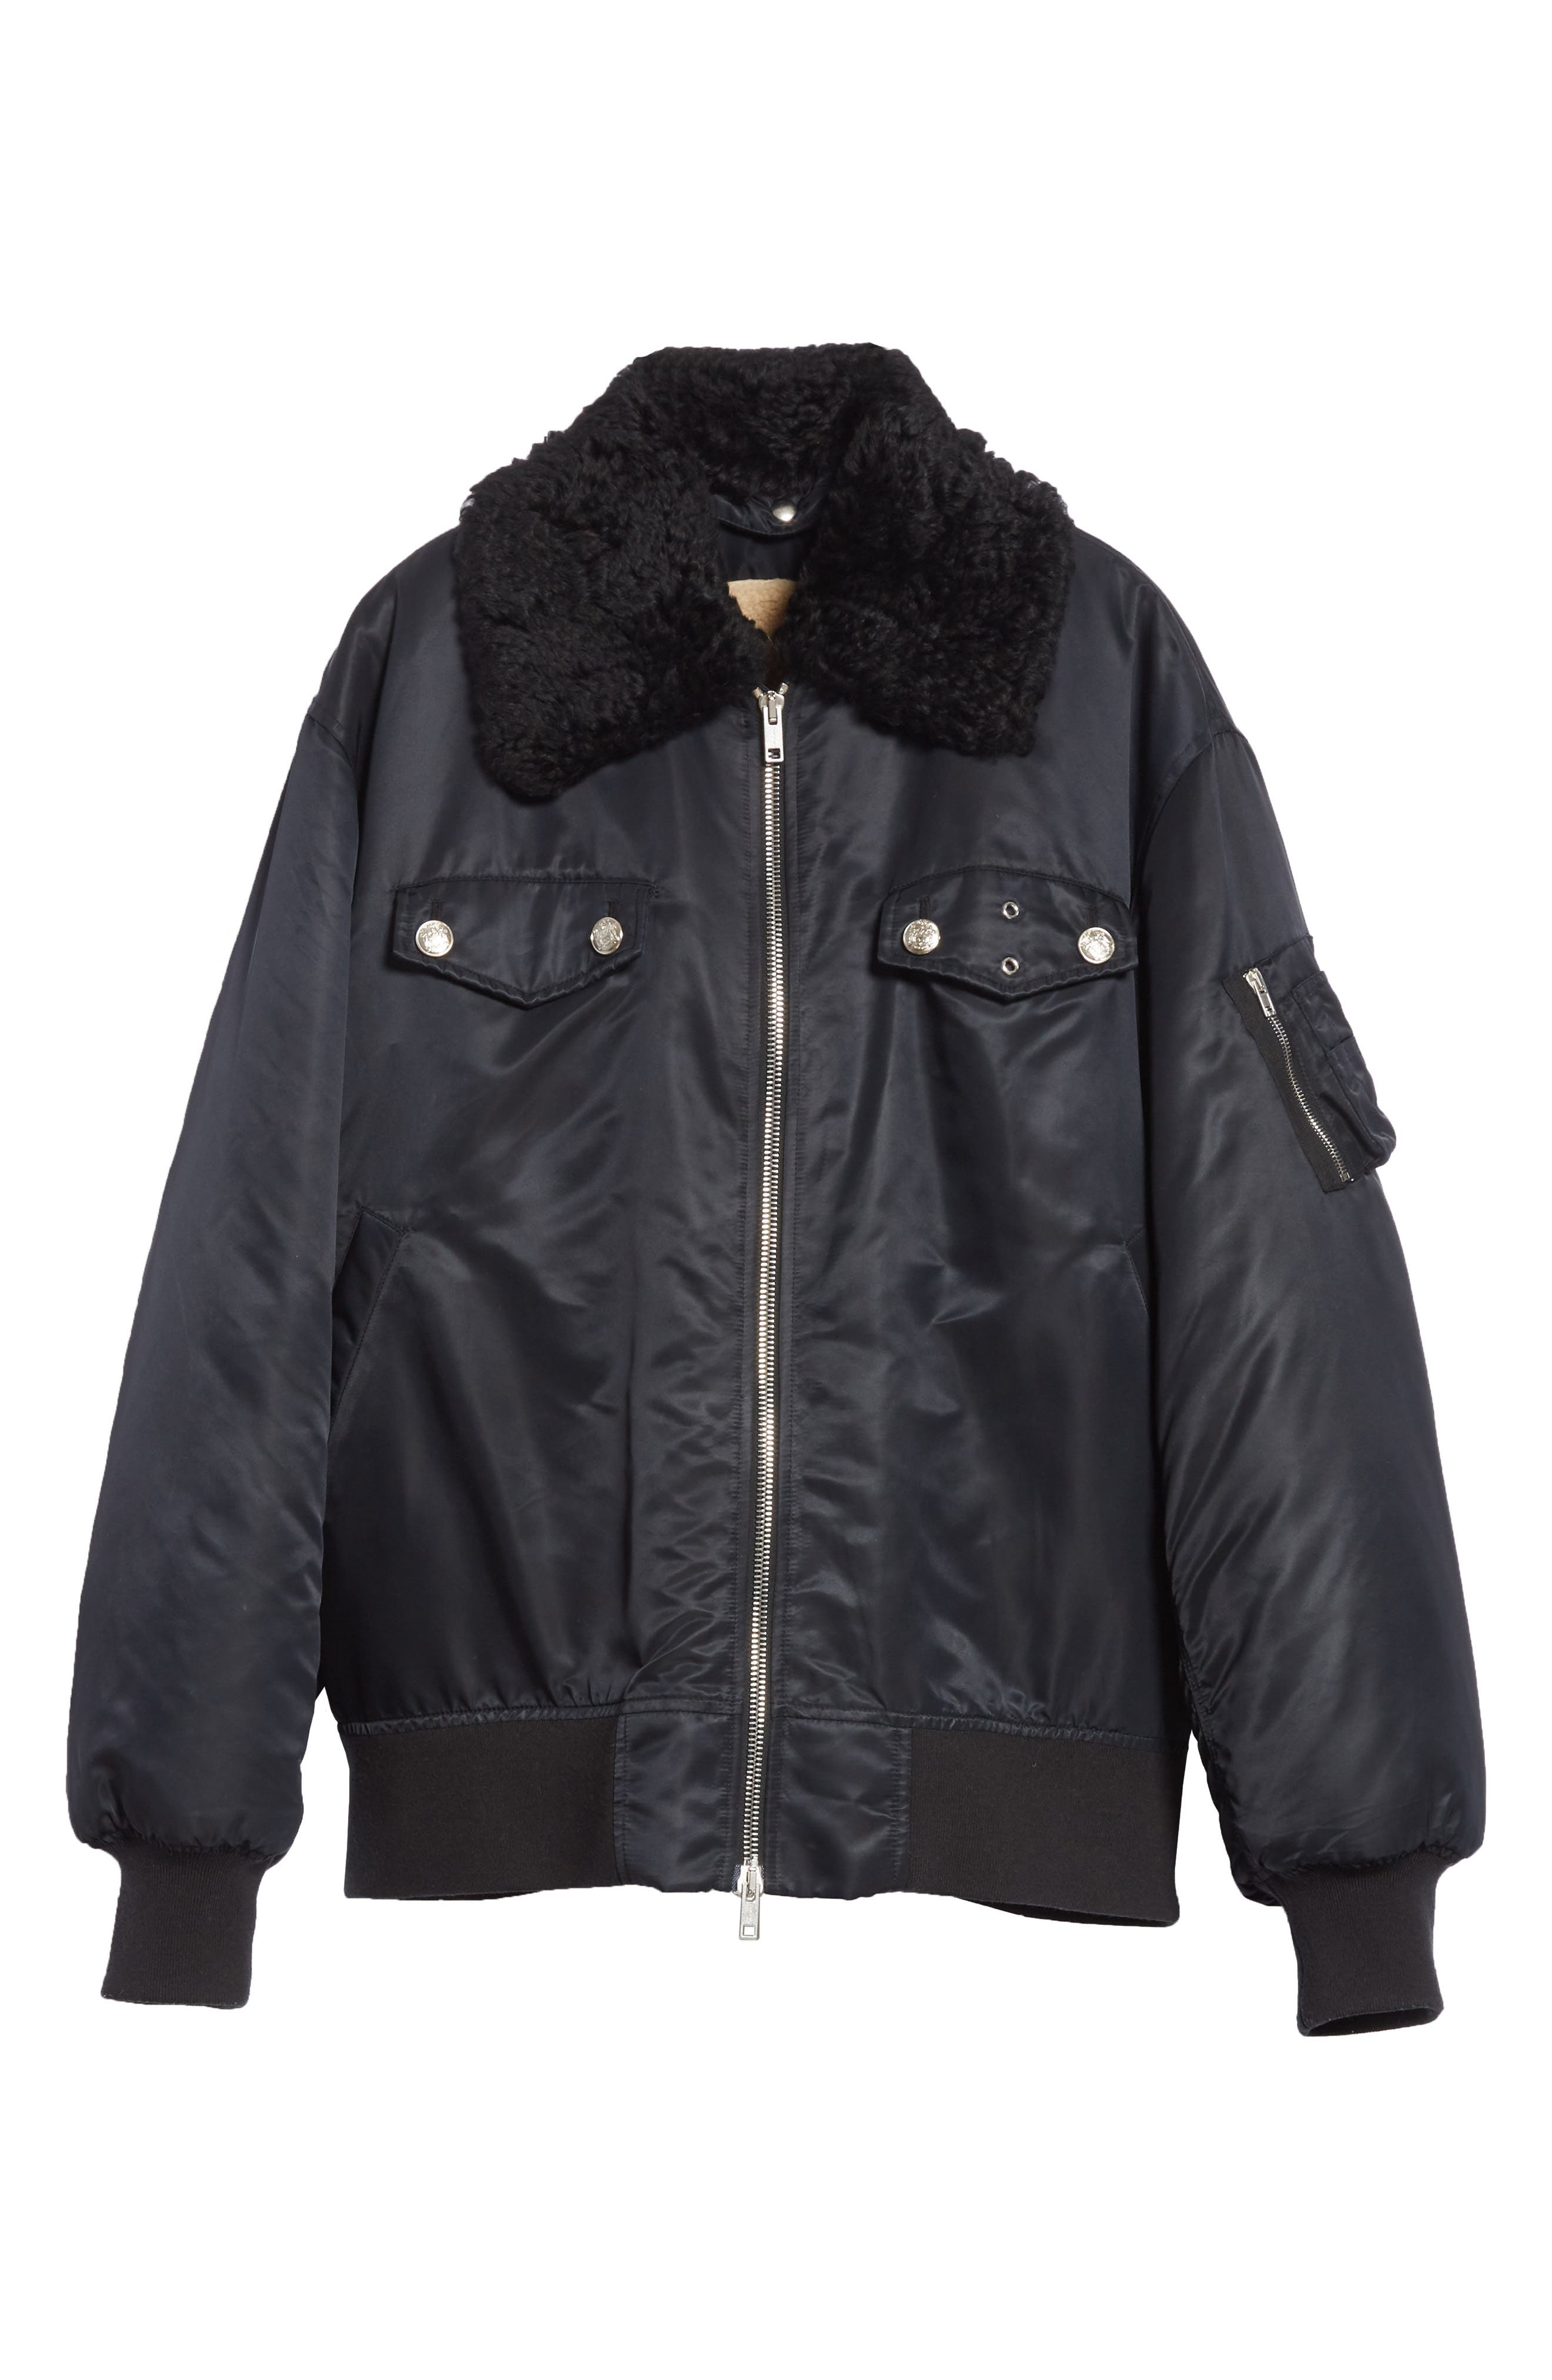 Oversize Bomber Jacket with Genuine Shearling Collar,                             Alternate thumbnail 5, color,                             001